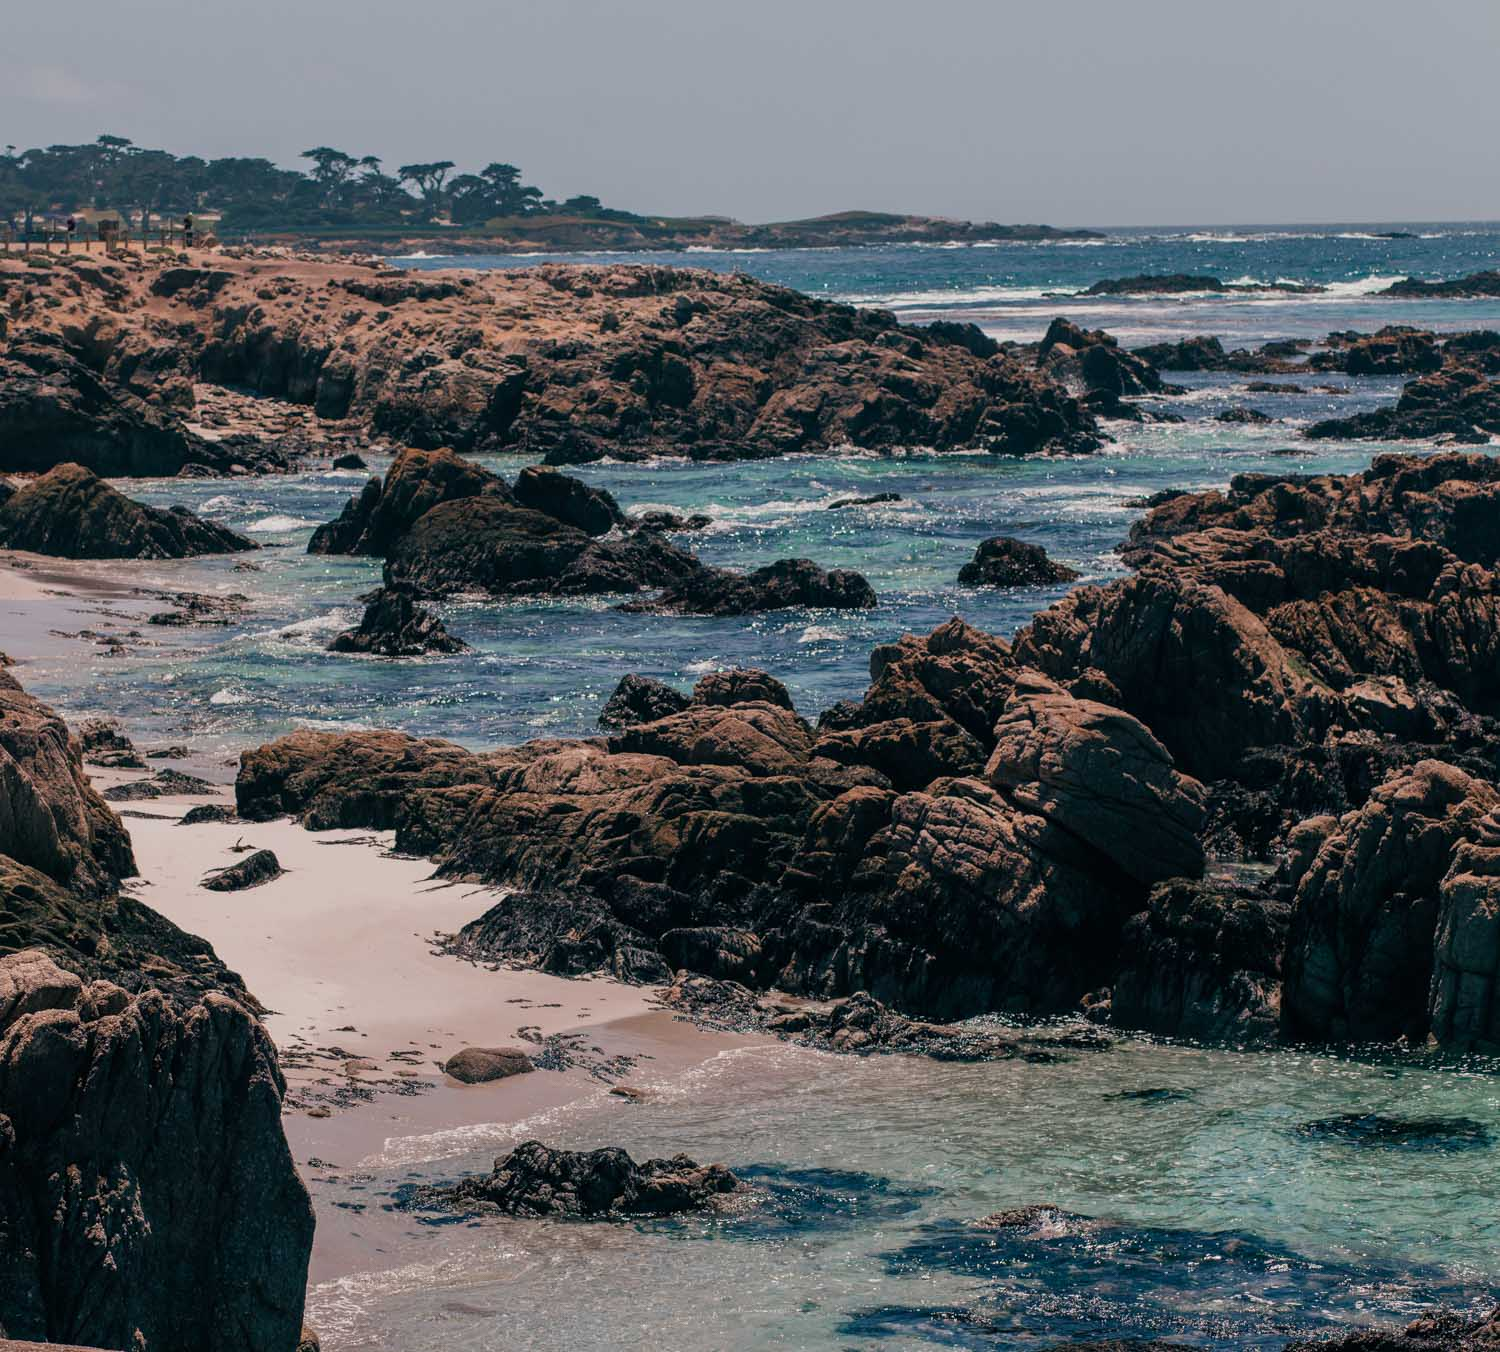 Fashion Blogger Elizabeth Hugen of Lizzie in Lace shares what to do in Carmel by-the-sea including exploring Pebble Beach 17 Mile Drive